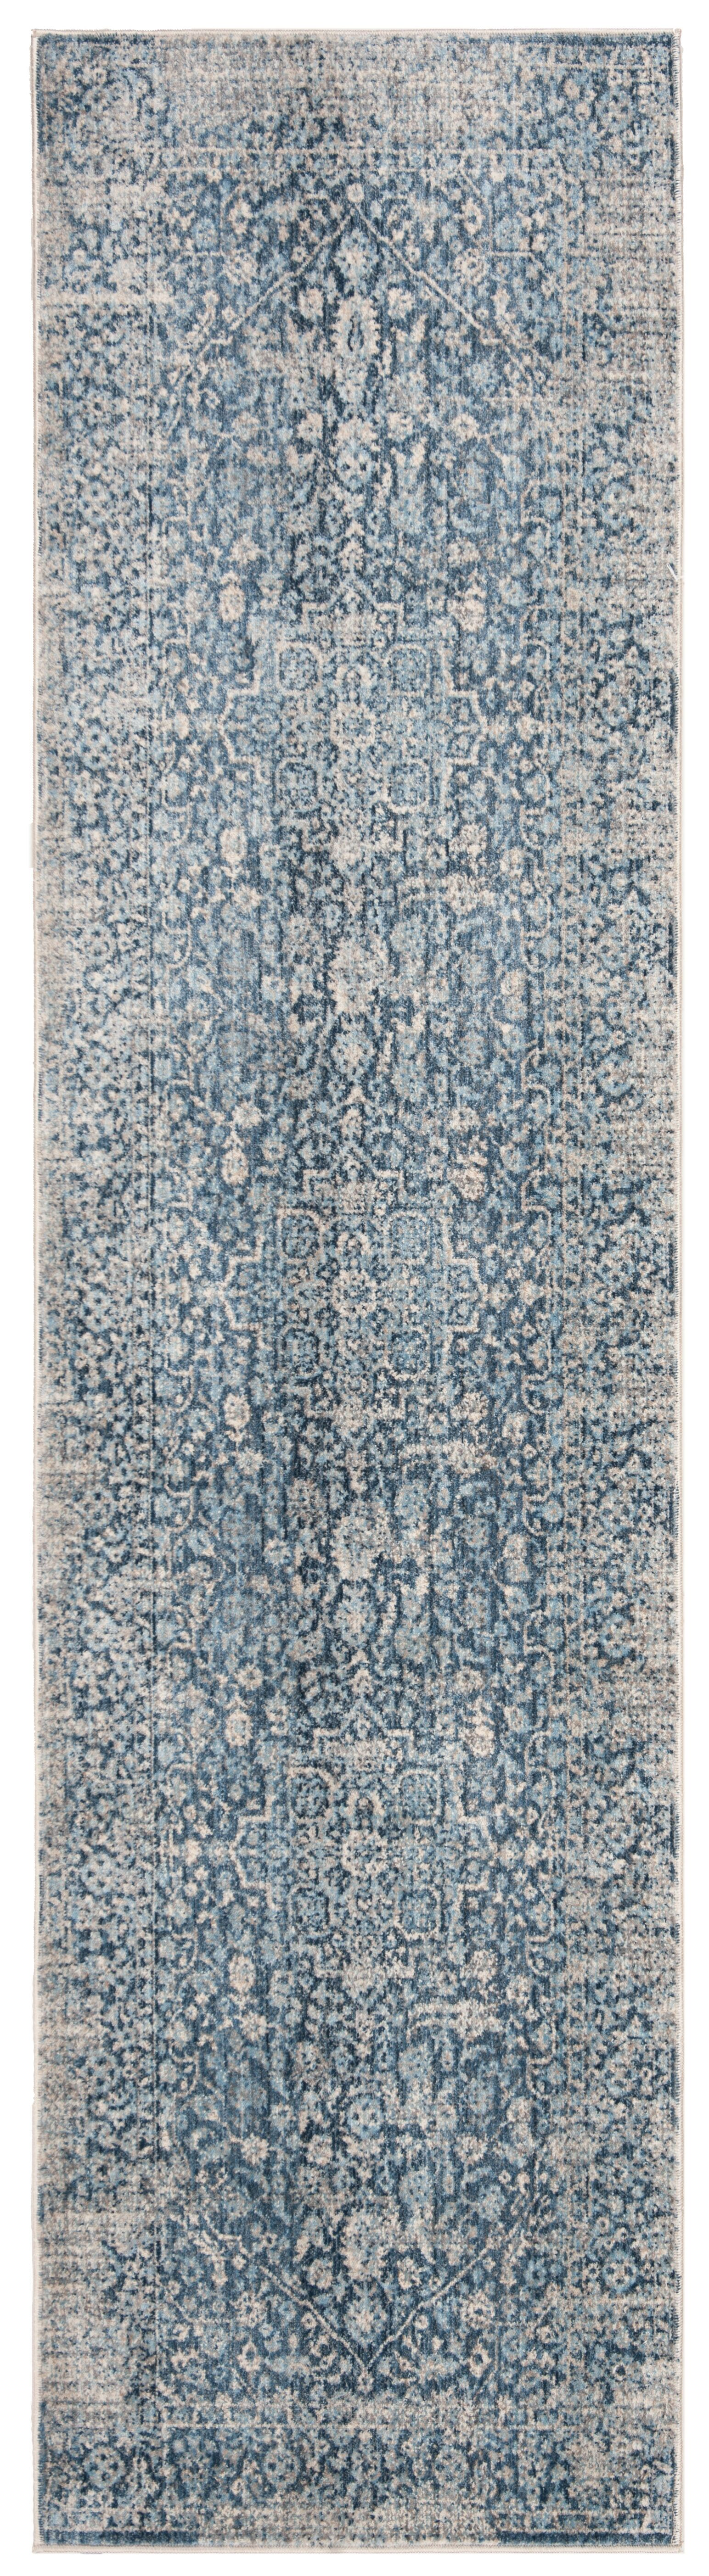 Coweta Vintage Persian Cotton Blue/Ivory Area Rug Rug Size: Rectangle 4' X 6'